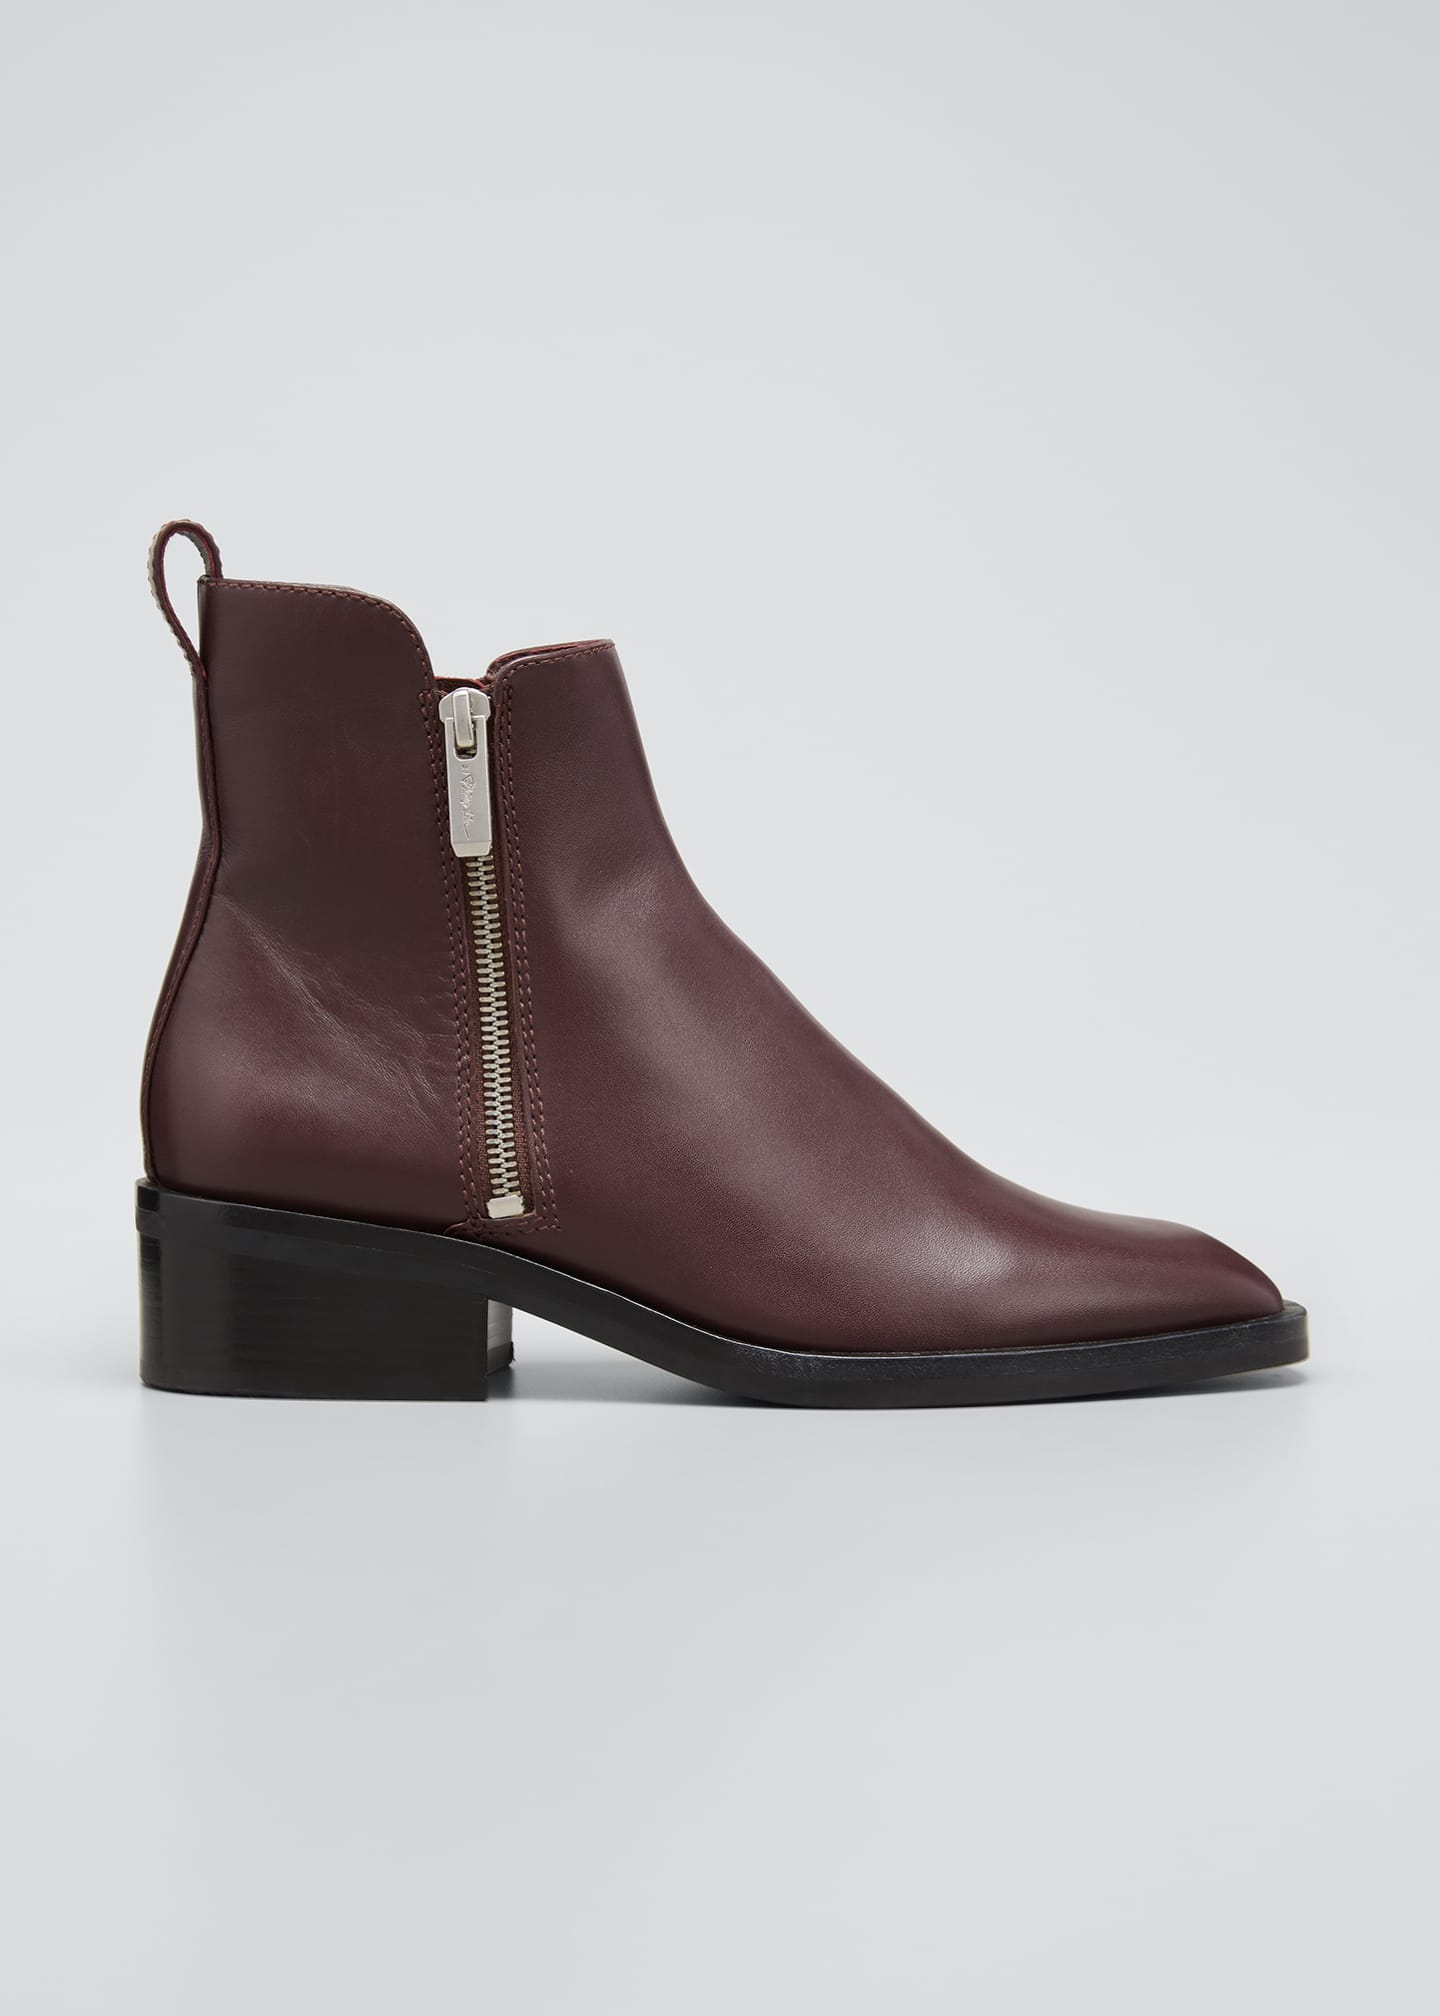 Image 1 of 3: Alexa Dual Zip Ankle Boots